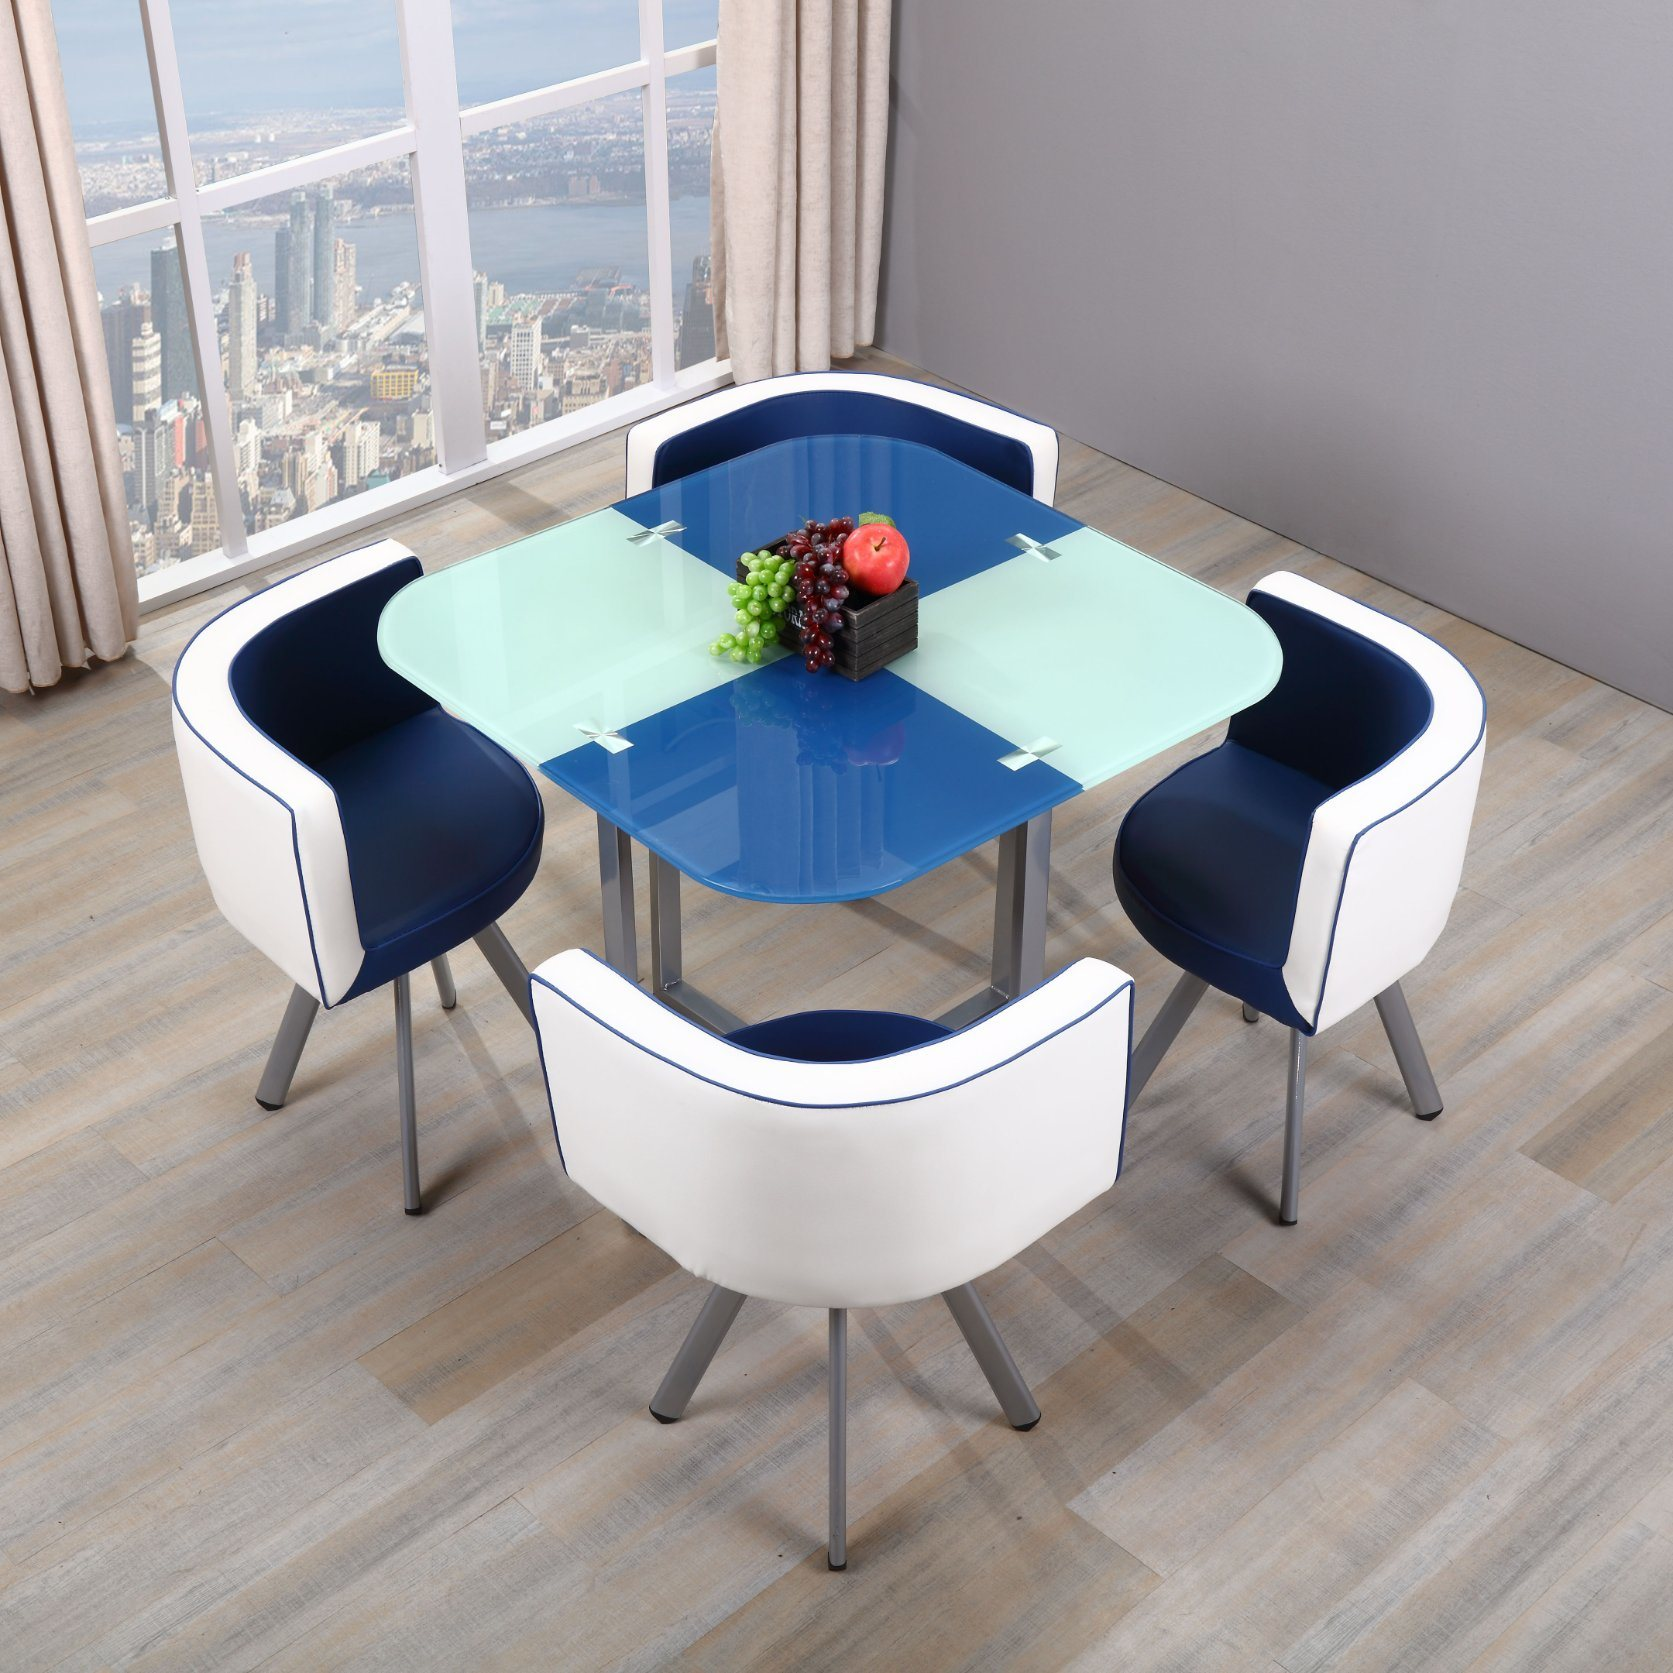 Dining Table Sets Room Furniture, Living Room Table Sets